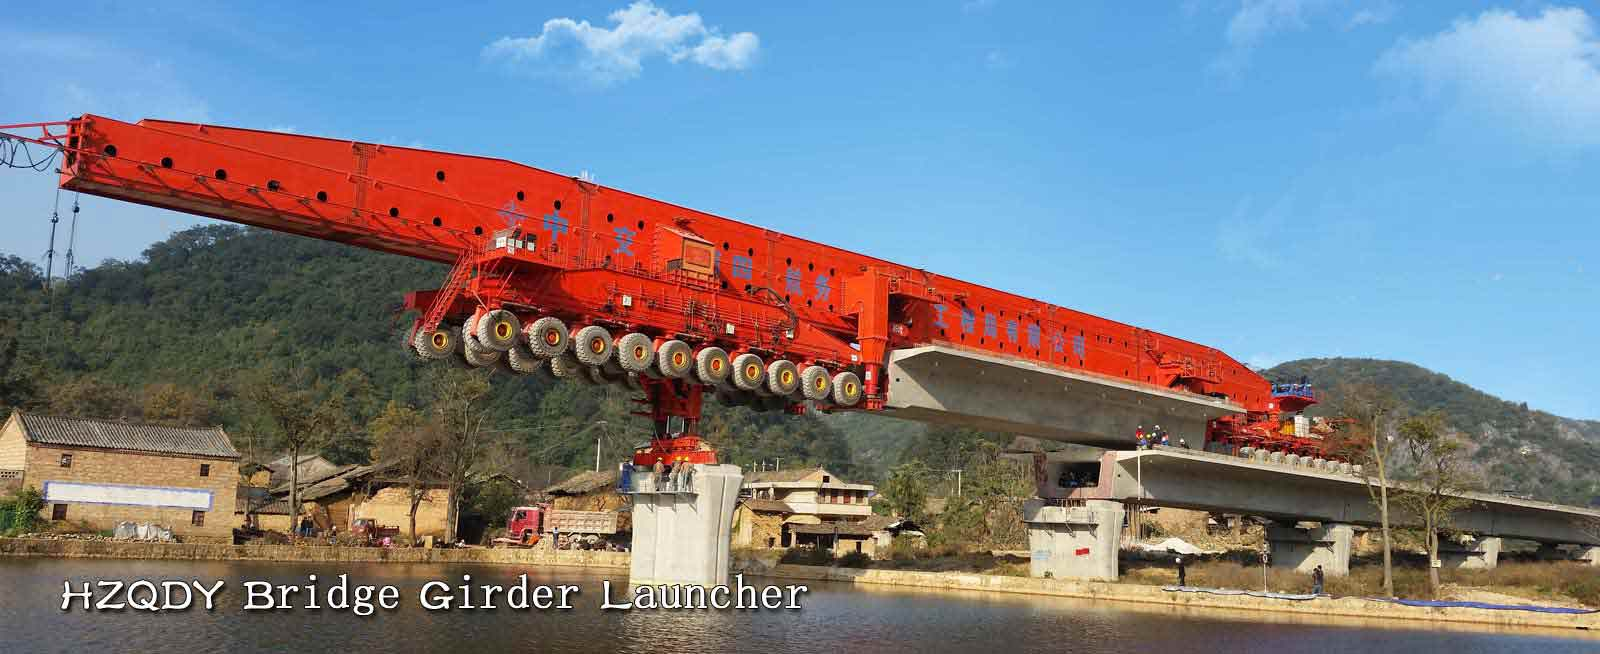 Bridge Girder Launcher Int